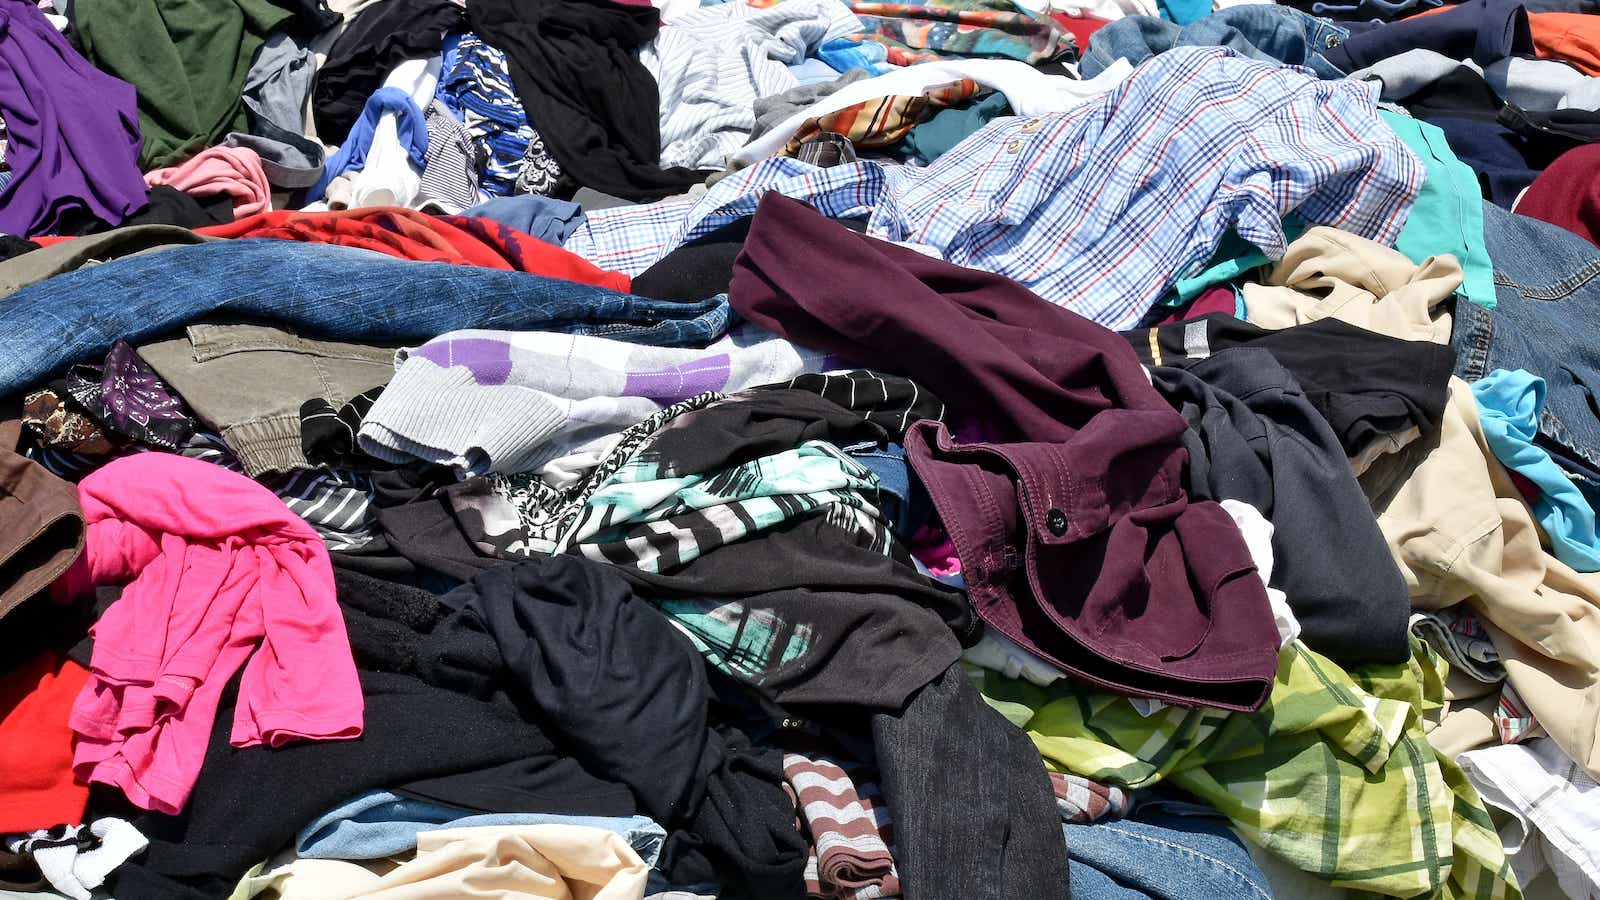 Pile of discarded clothing